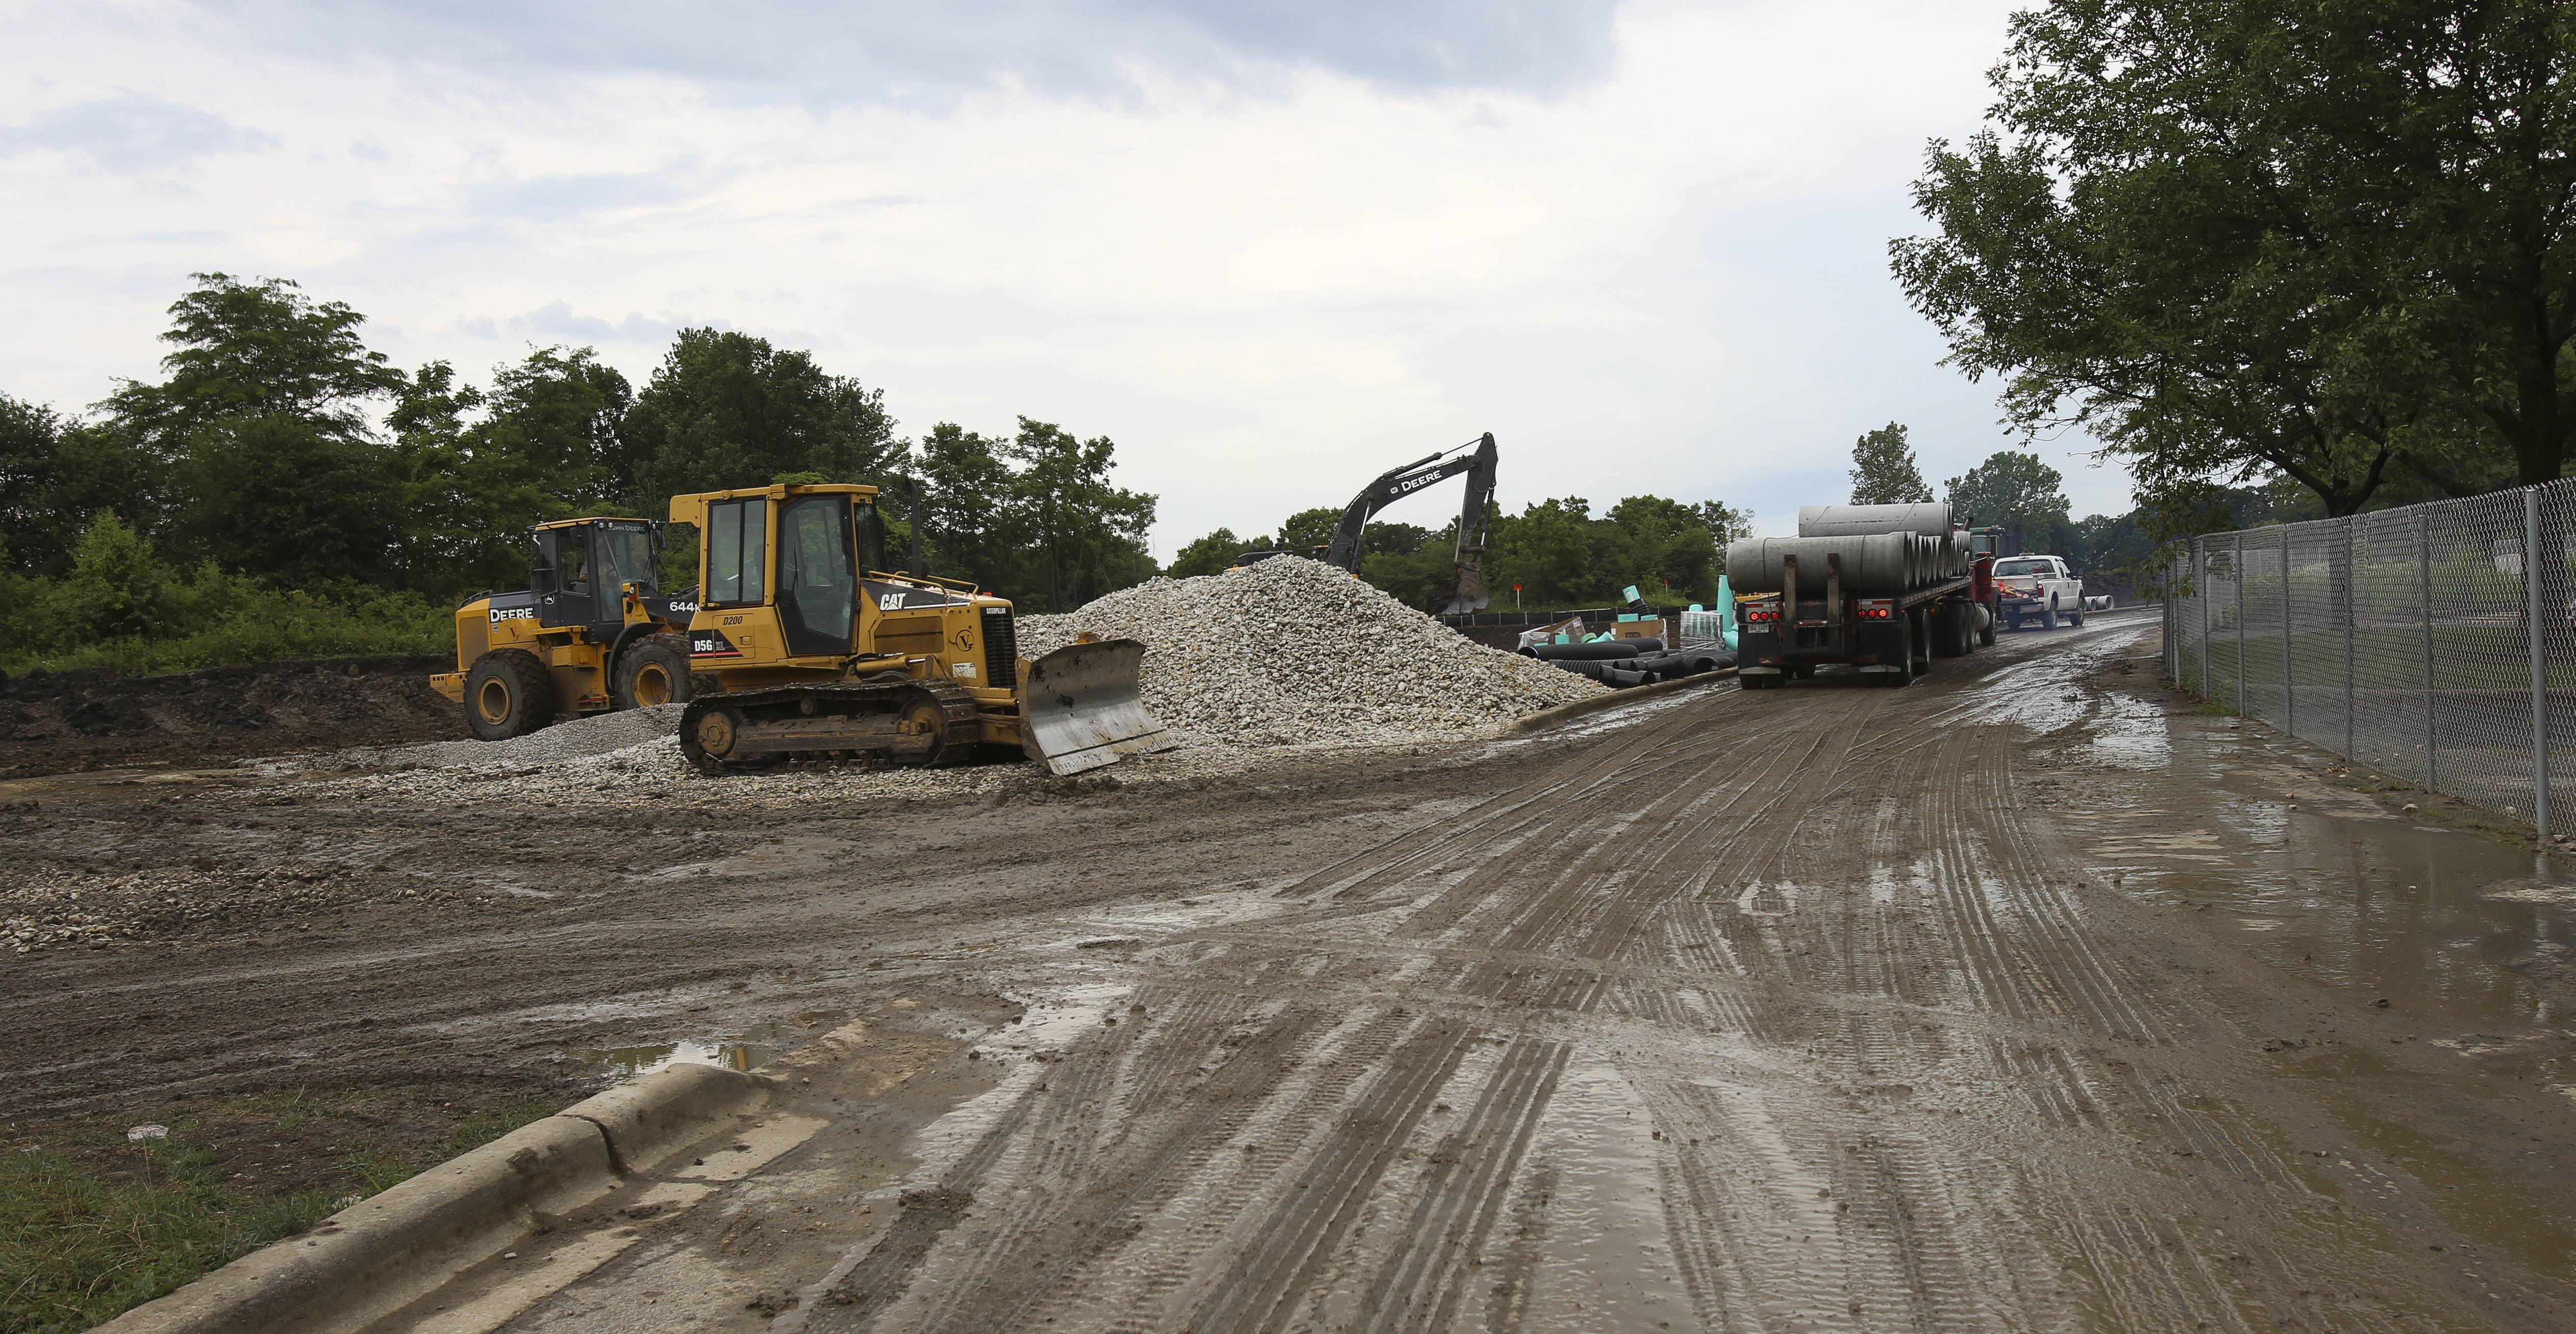 Crews are expanding the south parking lot at Cantigny Park in Wheaton.